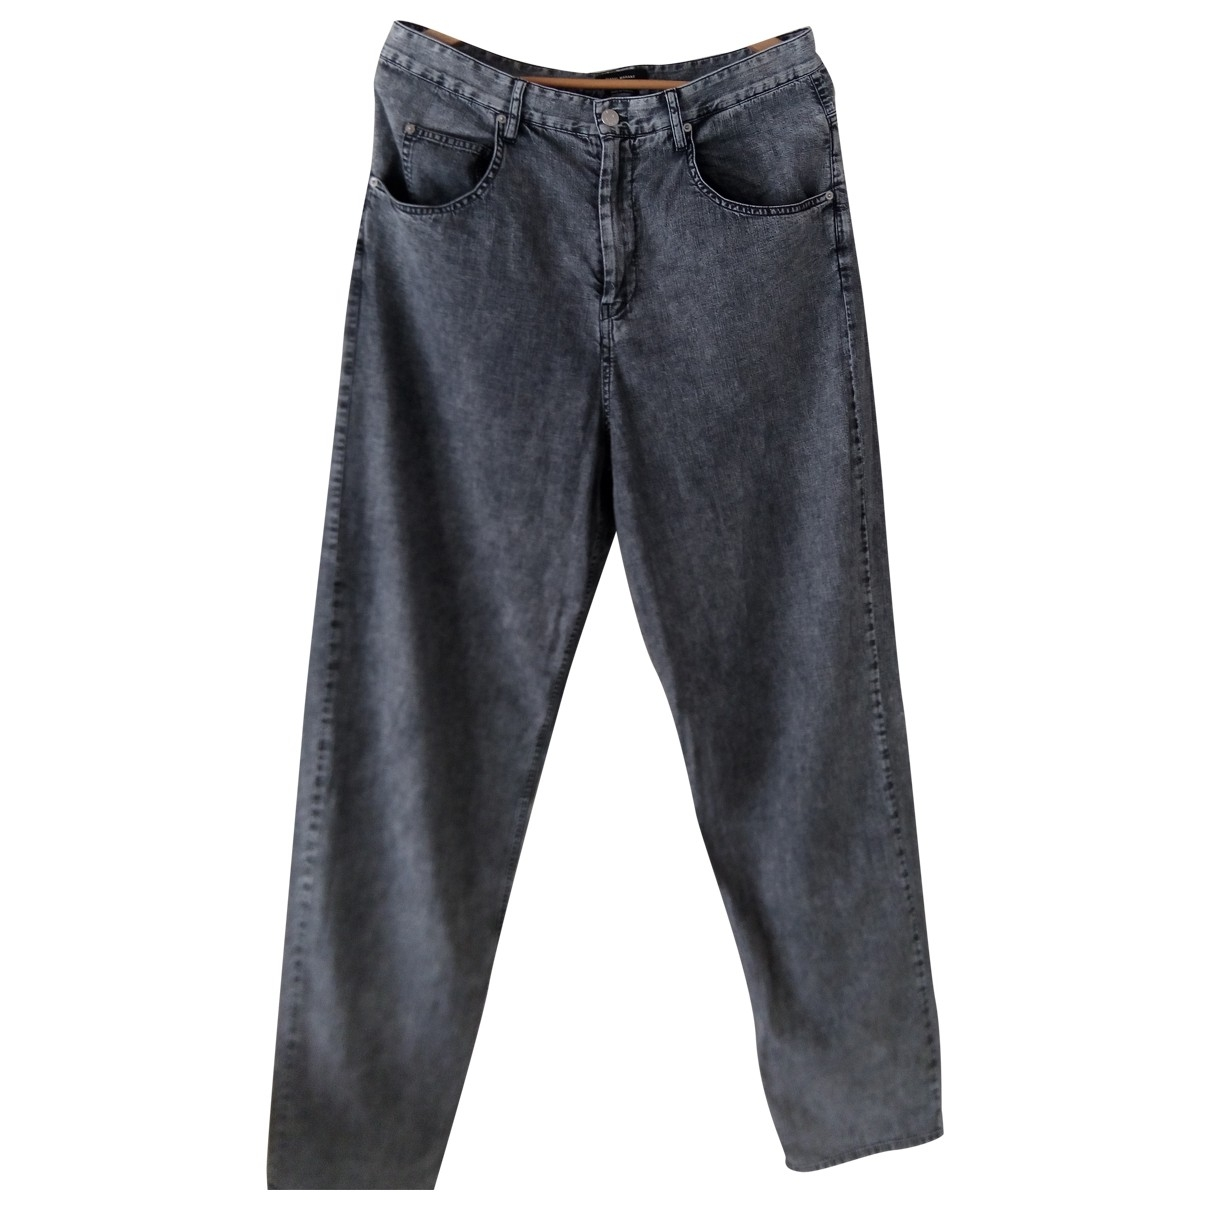 Isabel Marant \N Grey Cotton Trousers for Women 44 FR